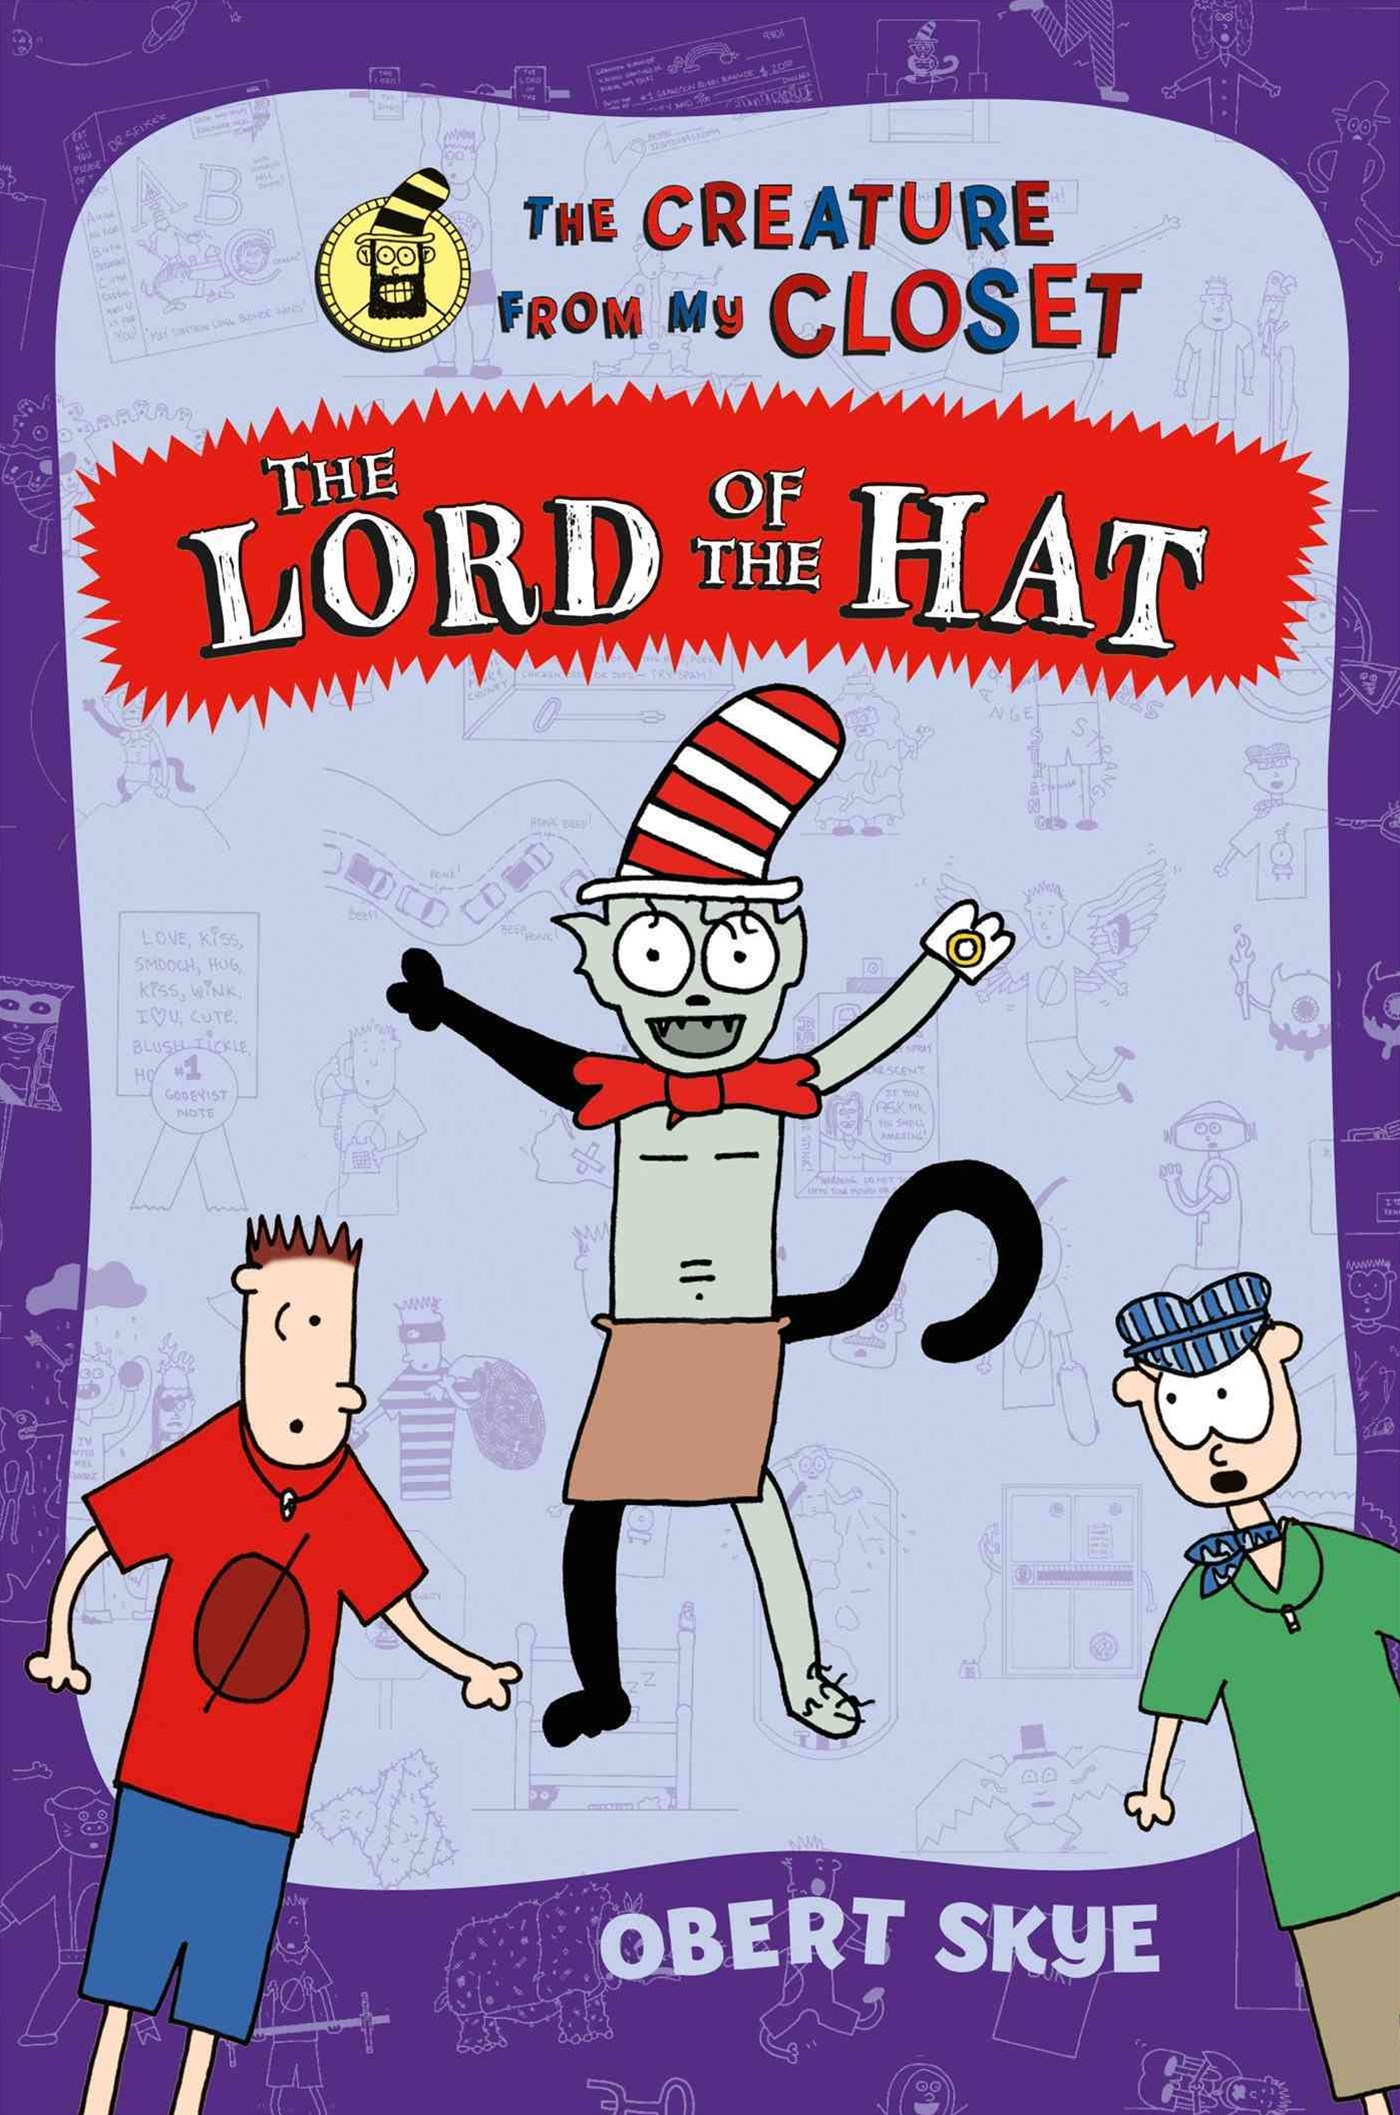 Lord of the Hat